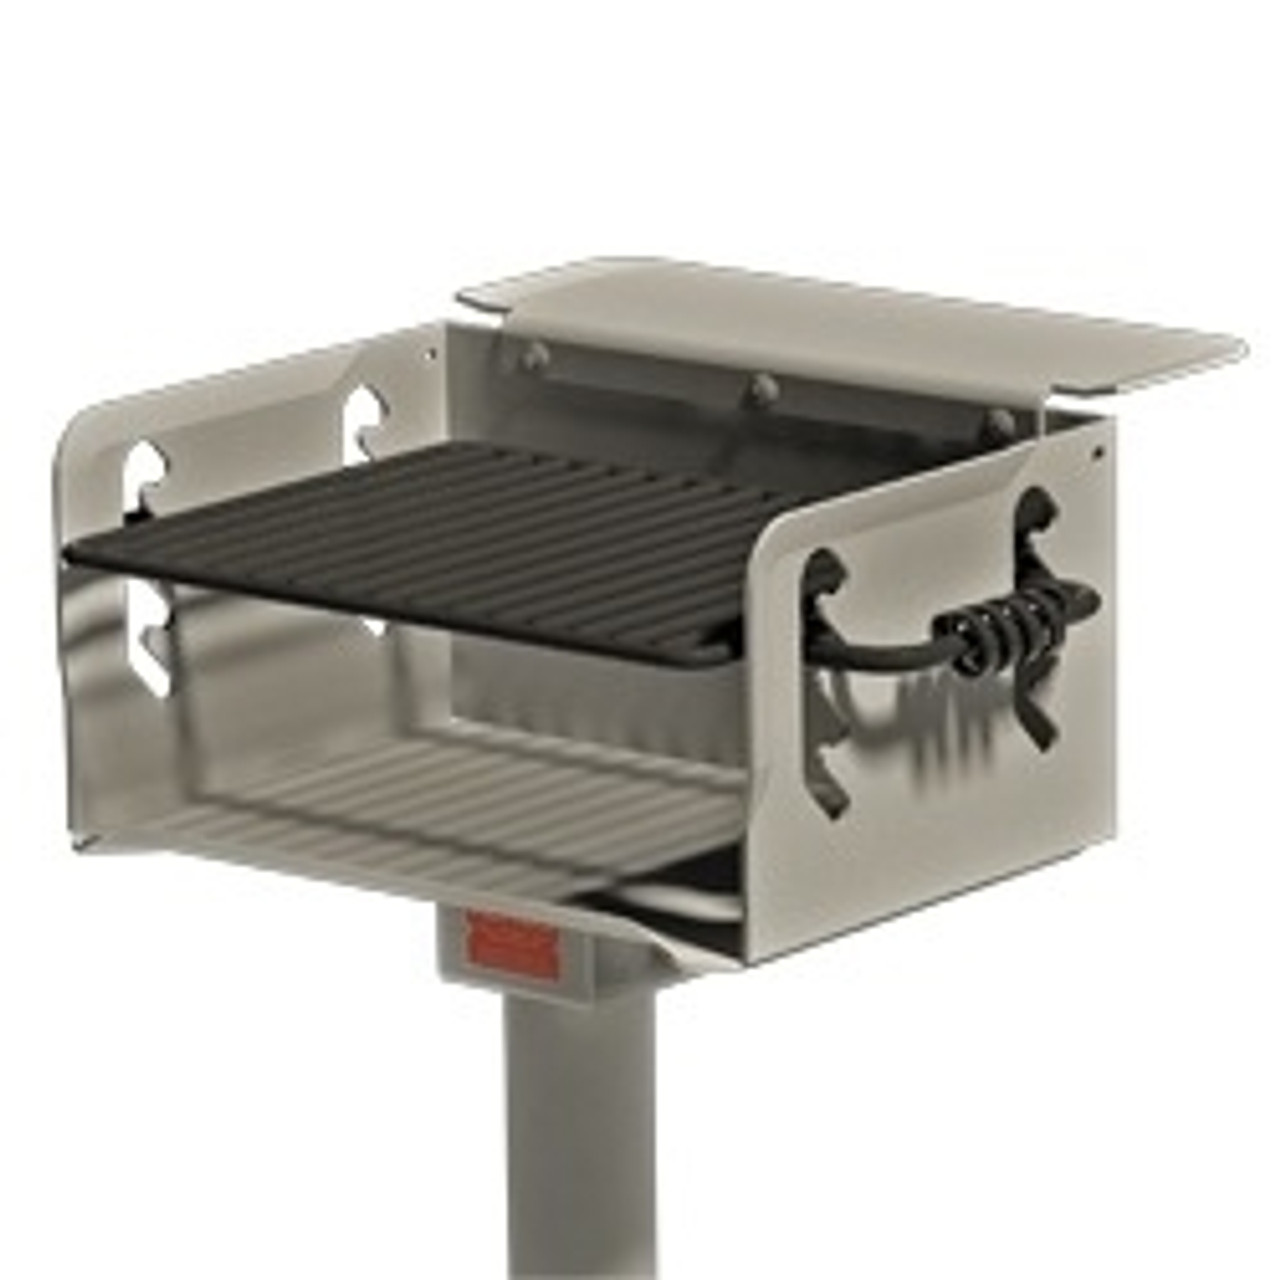 300 sq in Stainless Steel camp grill